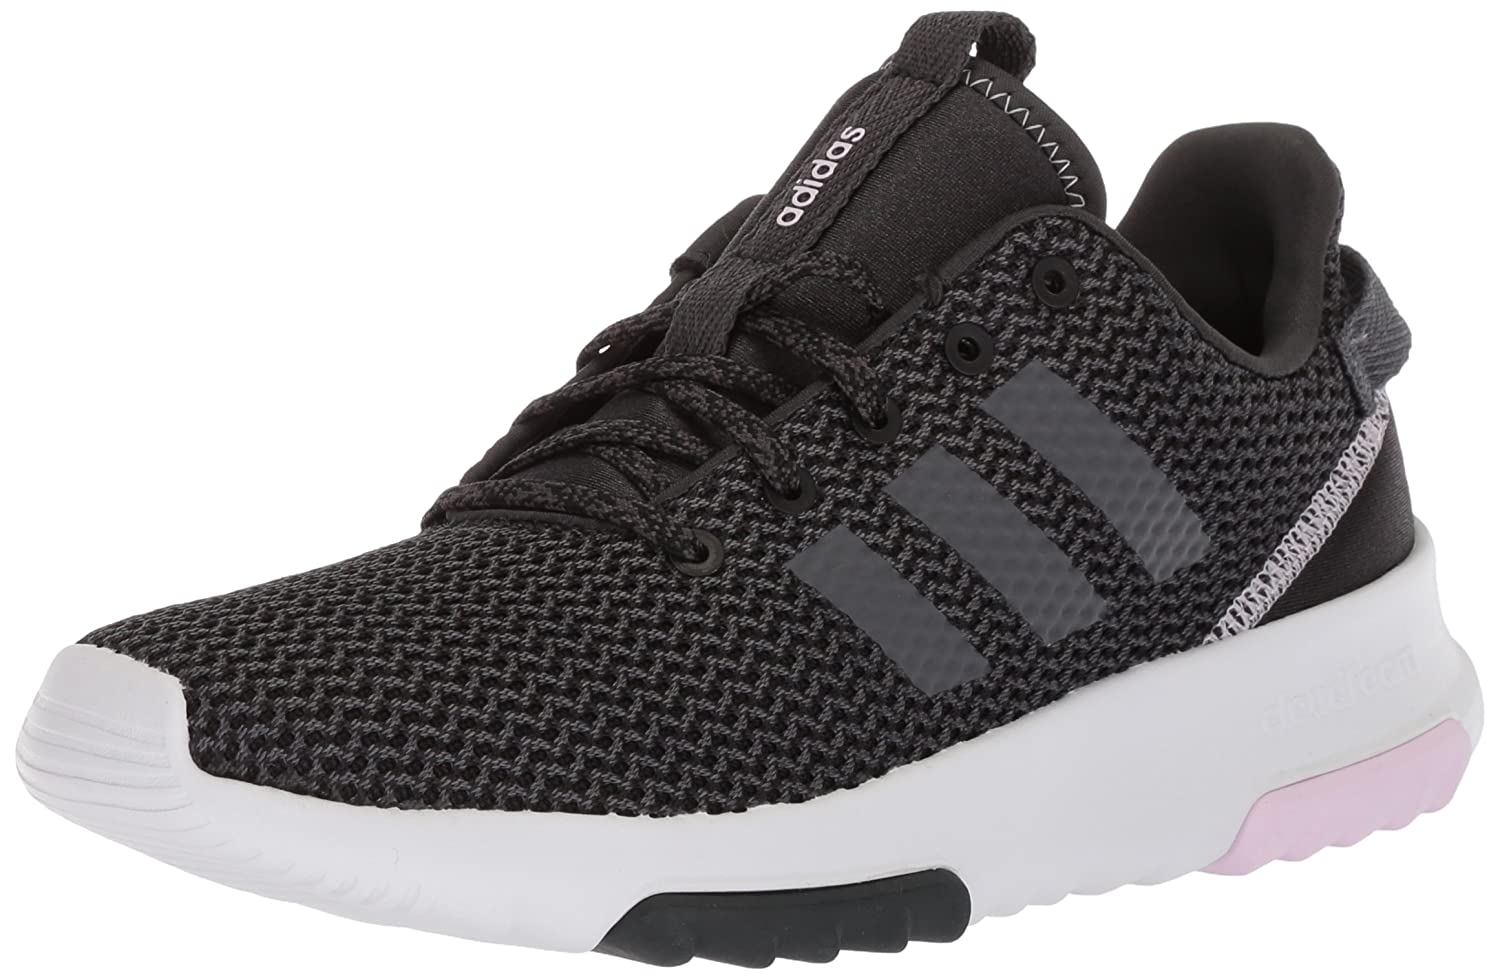 adidas Originals Women's Cf Racer Tr W Running Shoe B0711QZPSK 9.5 B(M) US|Carbon/Grey Five/Aero Pink